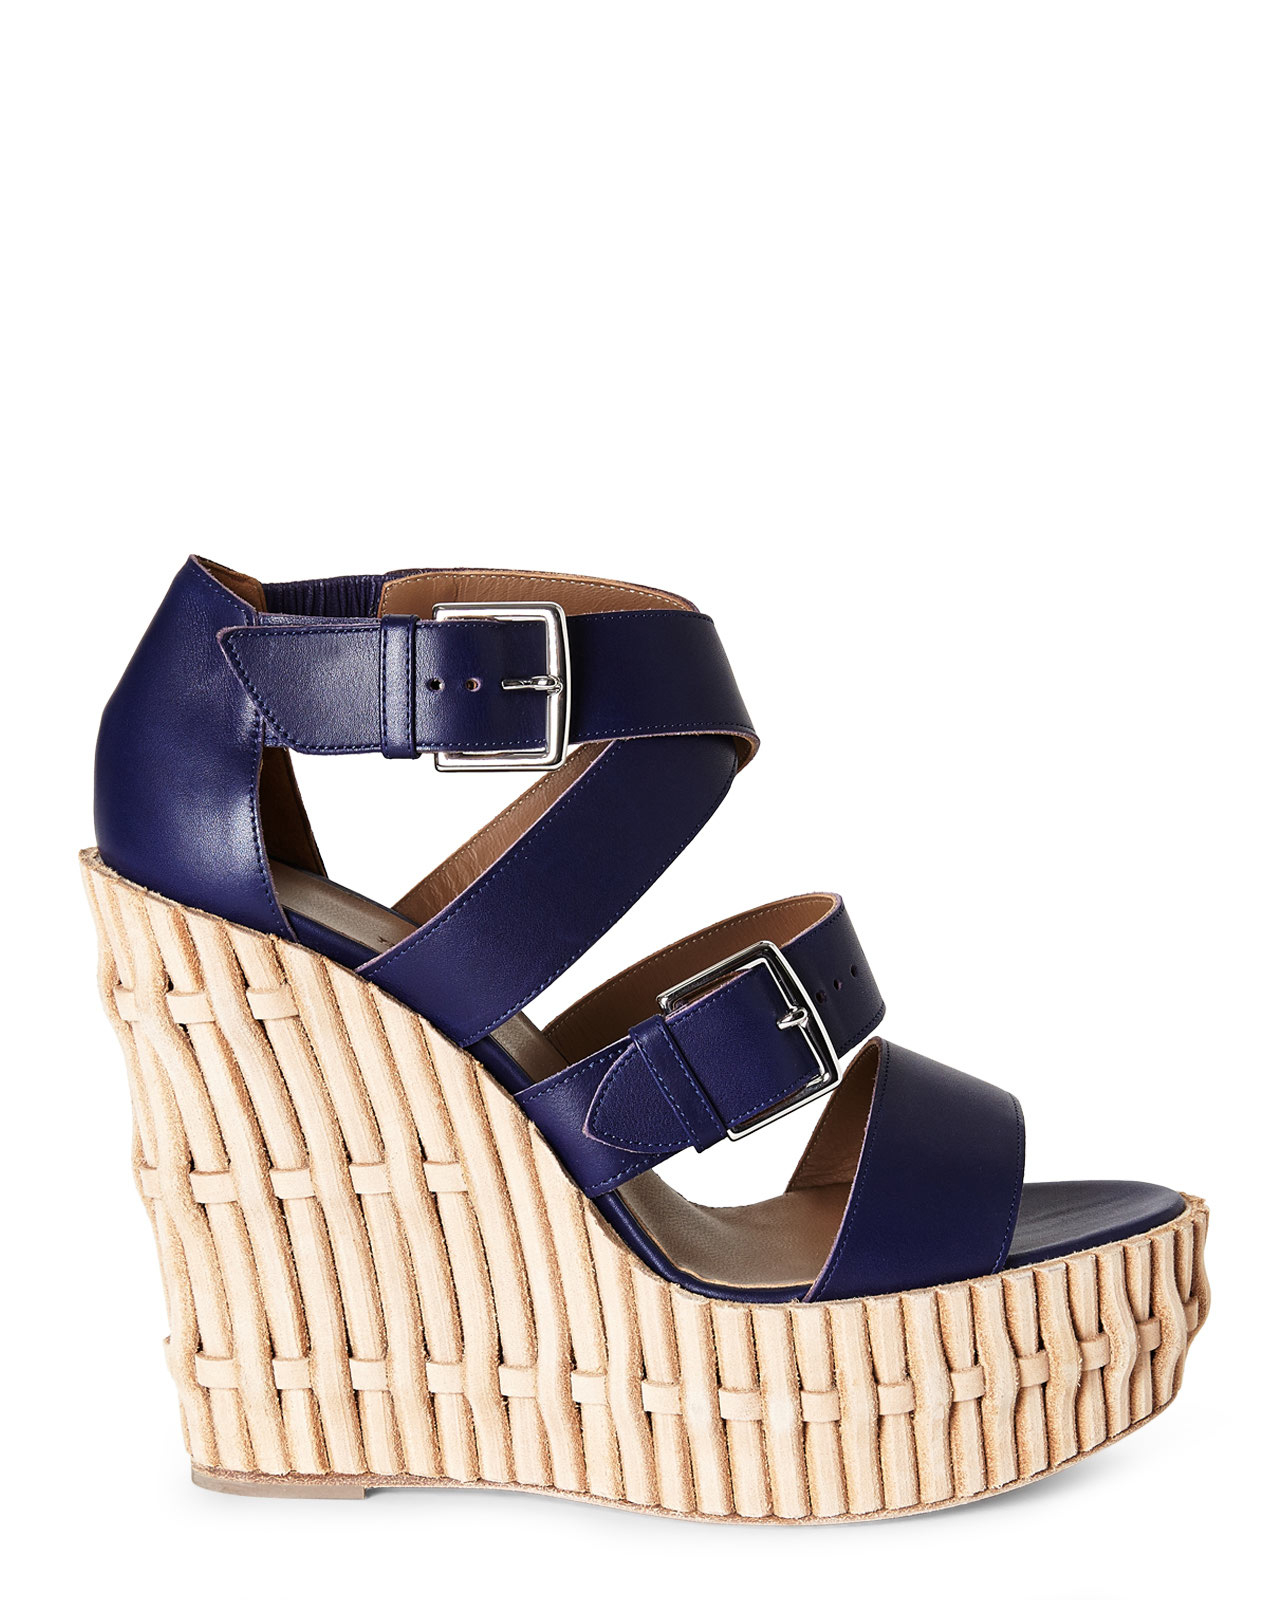 Hermès Leather Platform Wedges clearance supply discount good selling shop for 2014 newest cheap online wholesale price dVQGjH